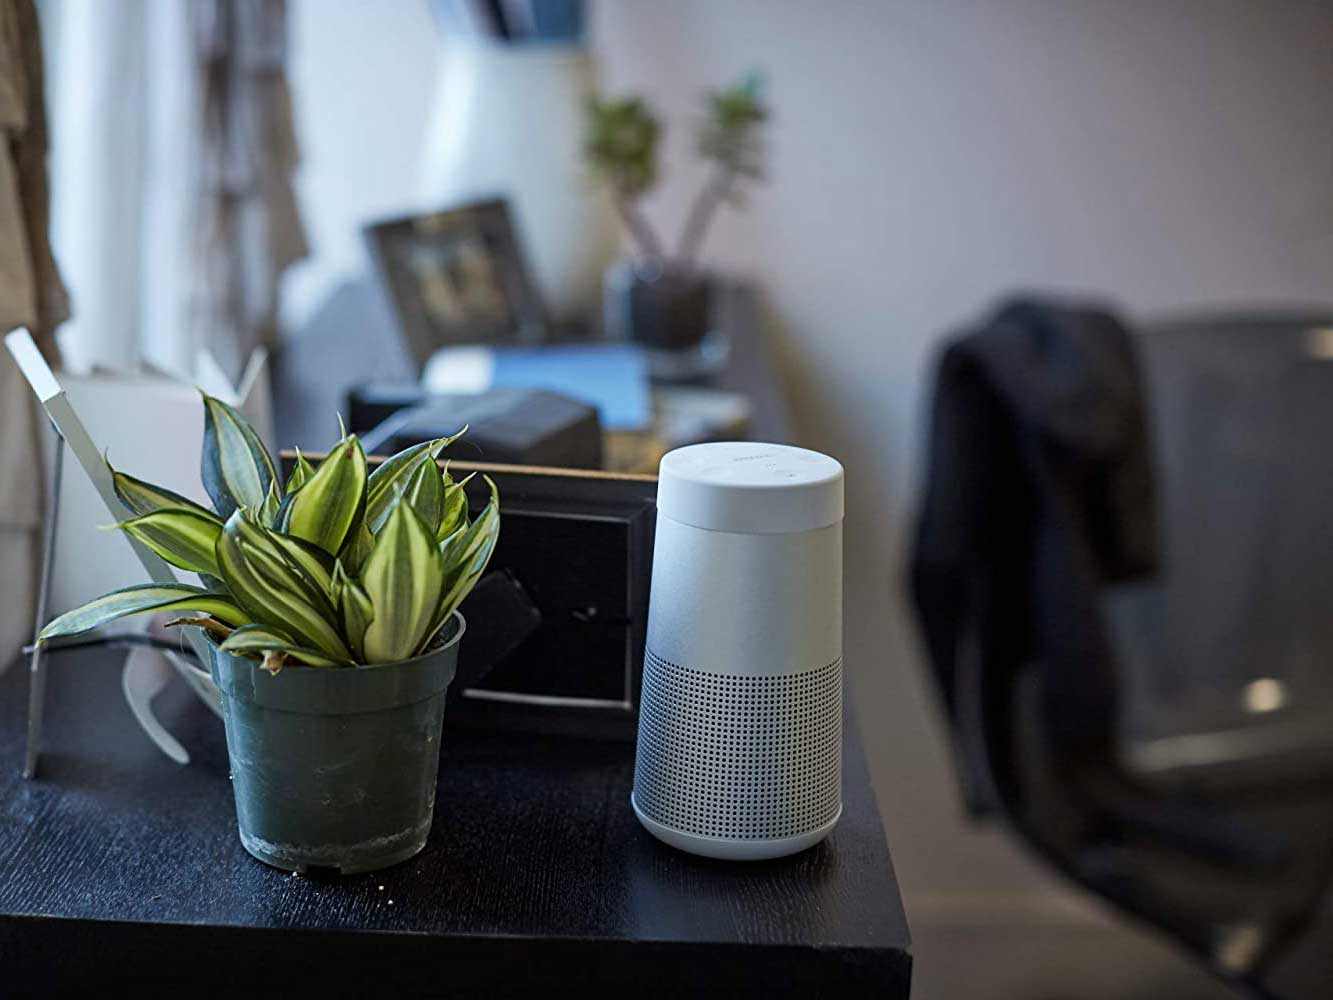 Smart speaker to use with Google Assistant.